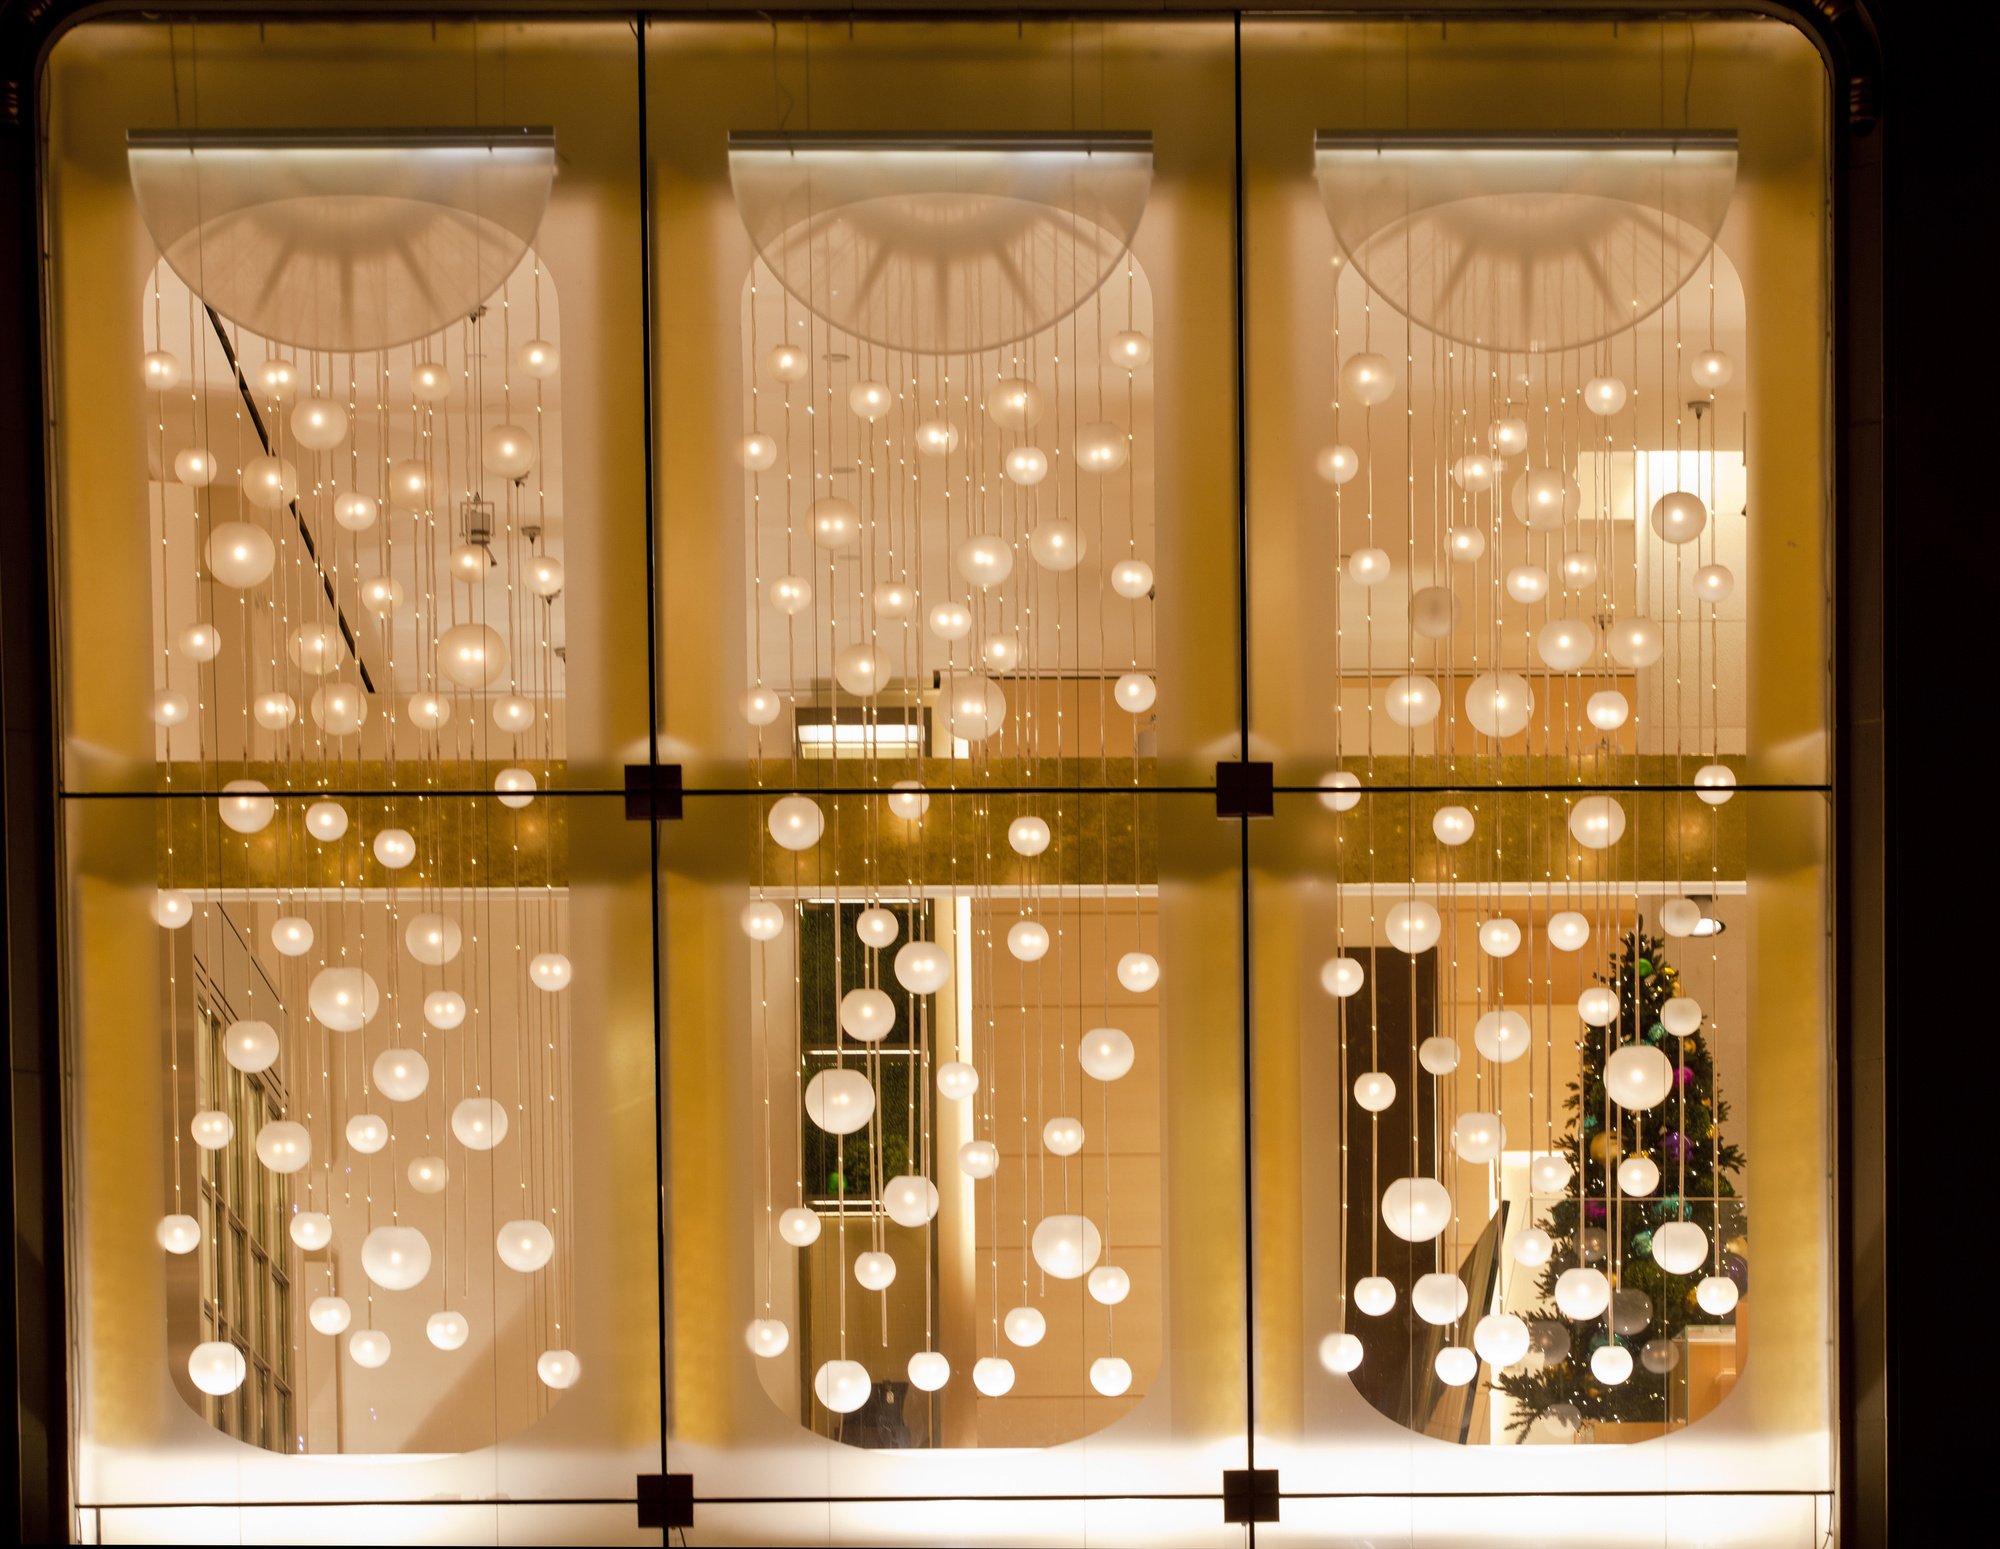 Top 29 Holiday Window Decor Ideas to Ring in Some Holiday Cheer